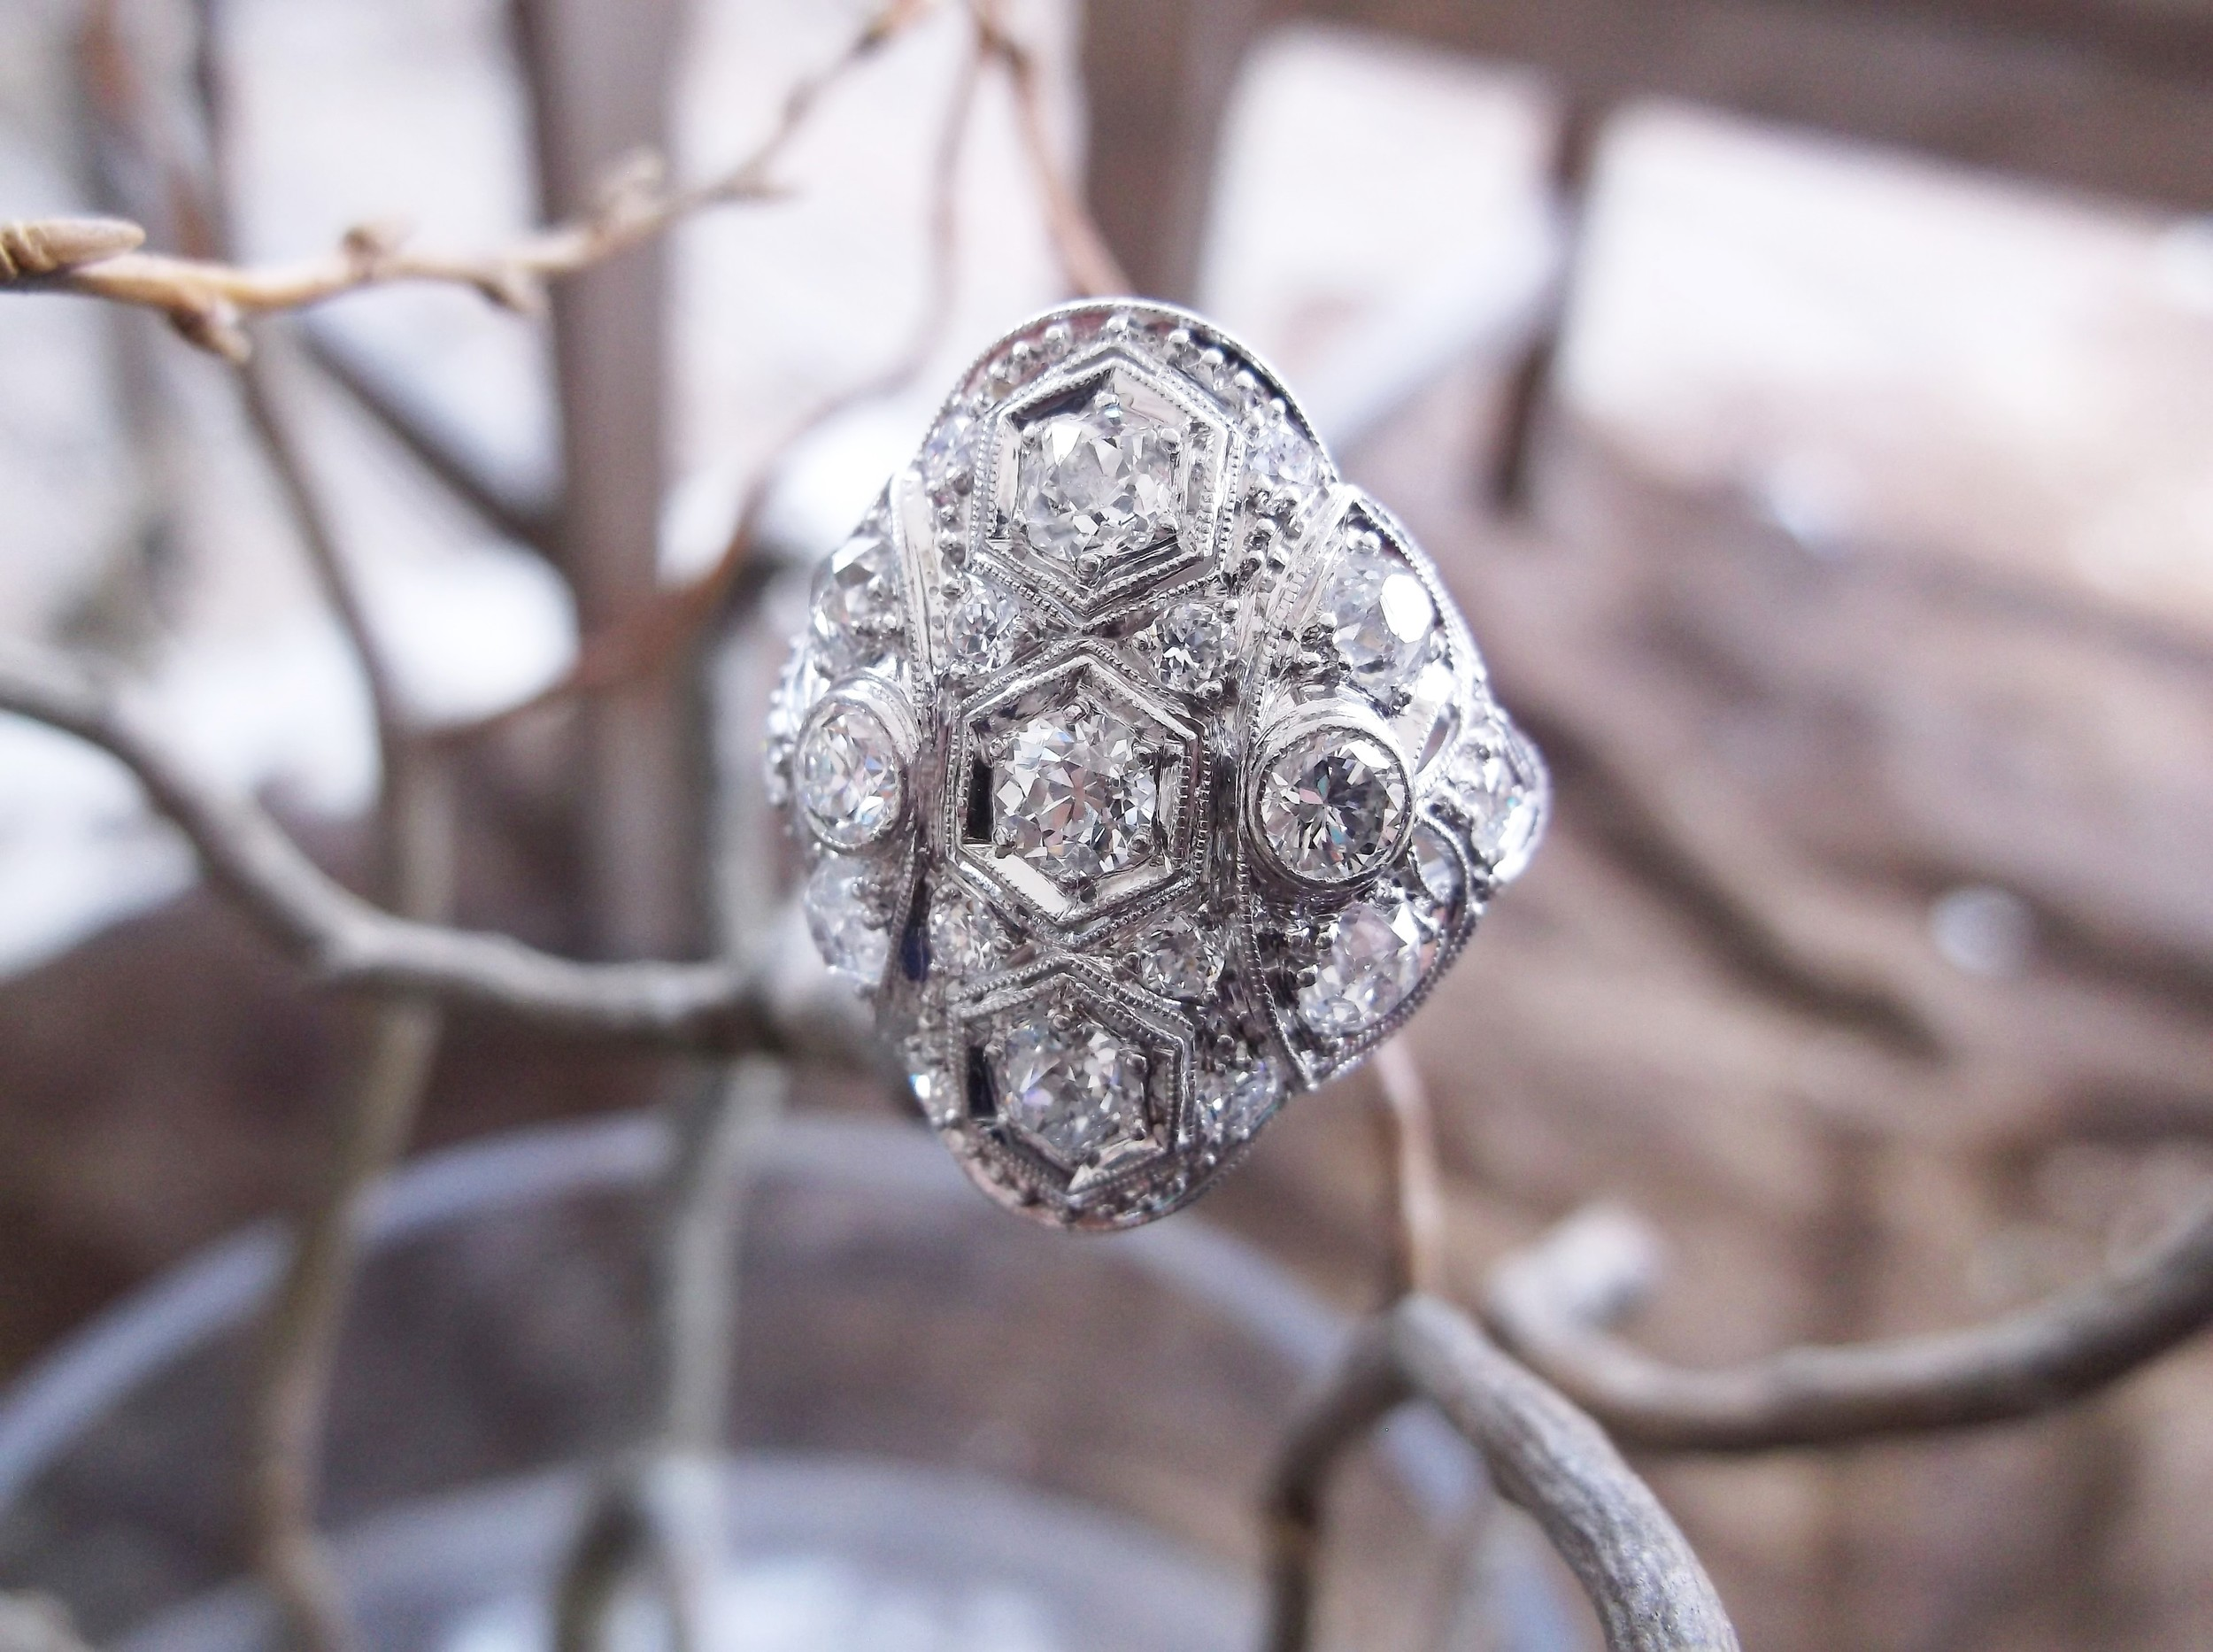 SOLD - The ultimate statement piece! 1.65 carats total weight in Old Mine cut diamonds set in platinum, circa 1920's.